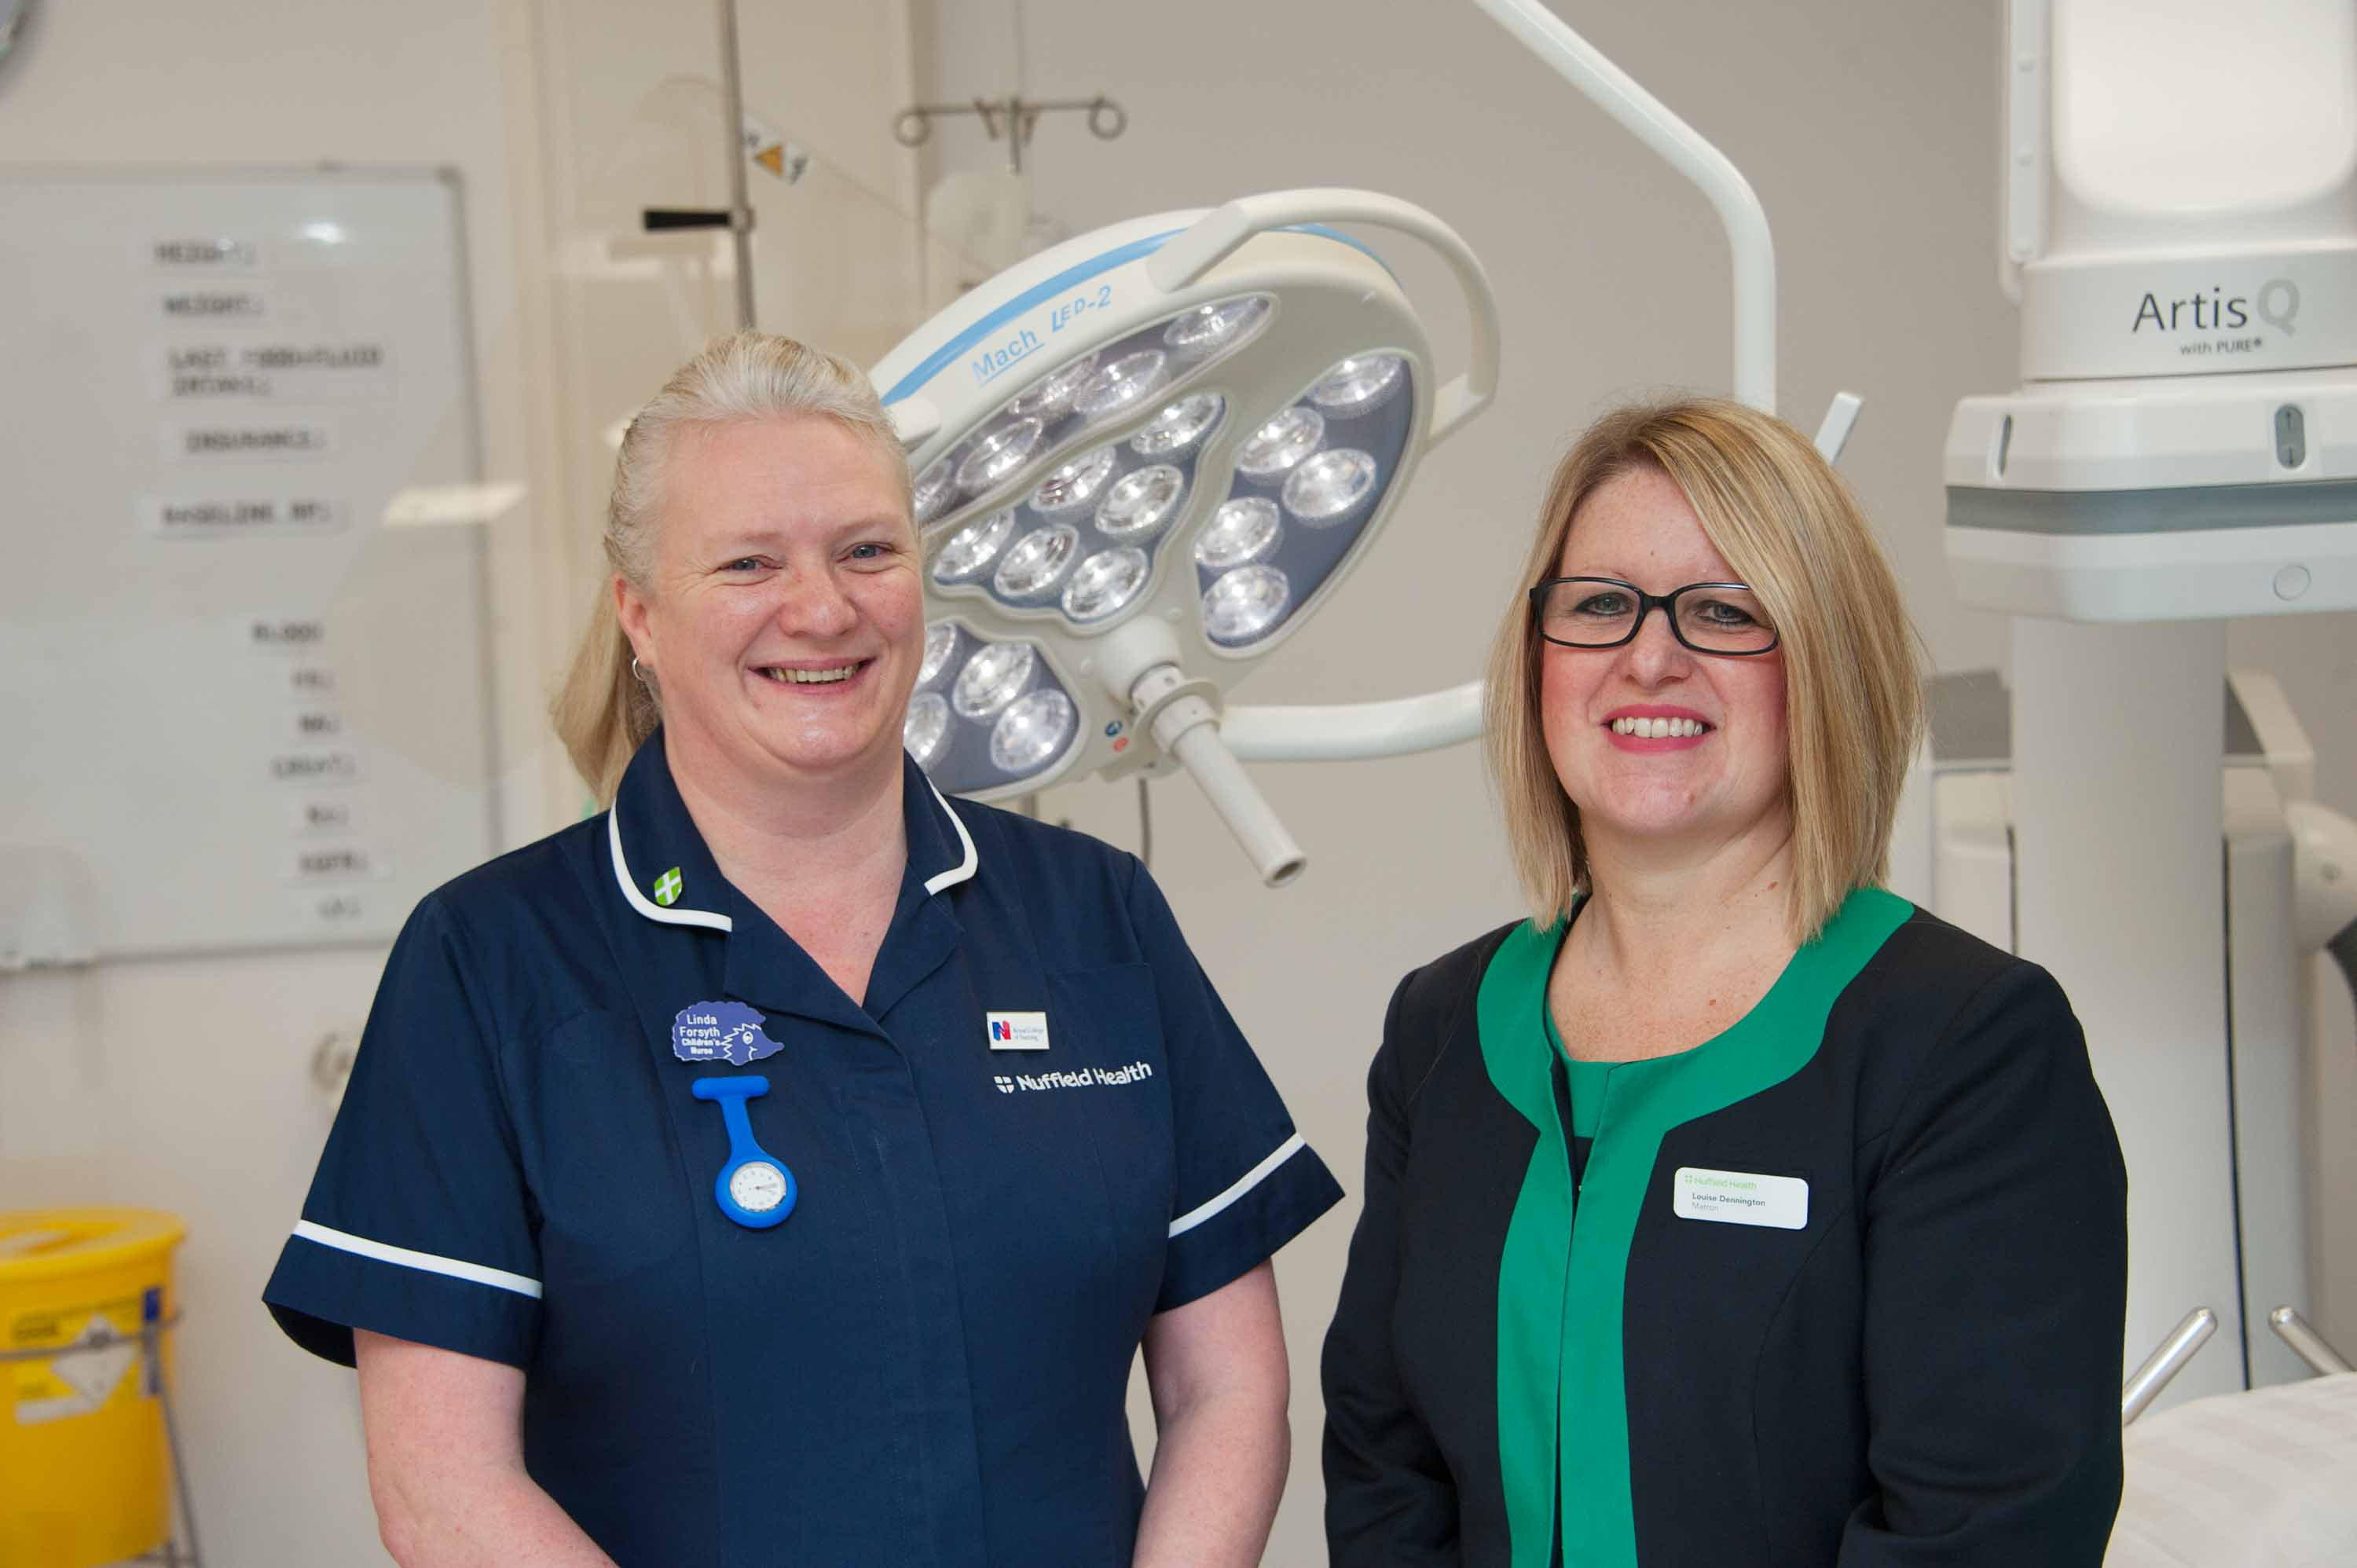 New appointments at Nuffield Health Linda Forsyth Lead Nurse CYP Services and Louise Dennington Nuffield Health Matron